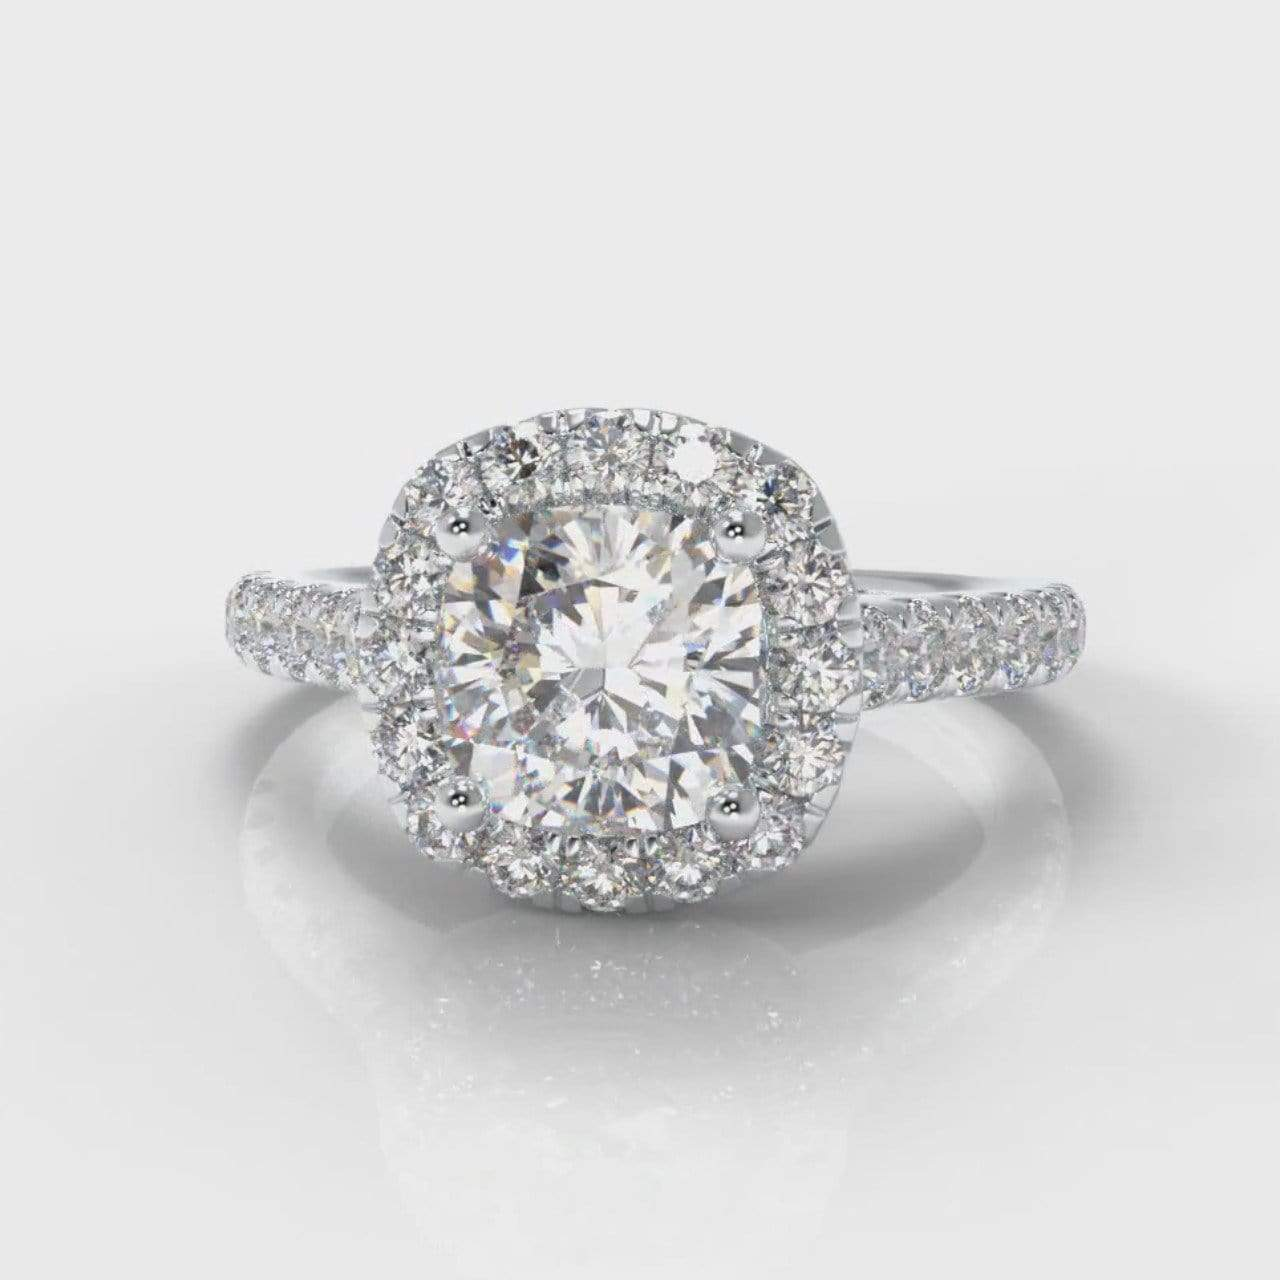 Castle Halo Cushion Cut Lab Diamond Engagement Ring